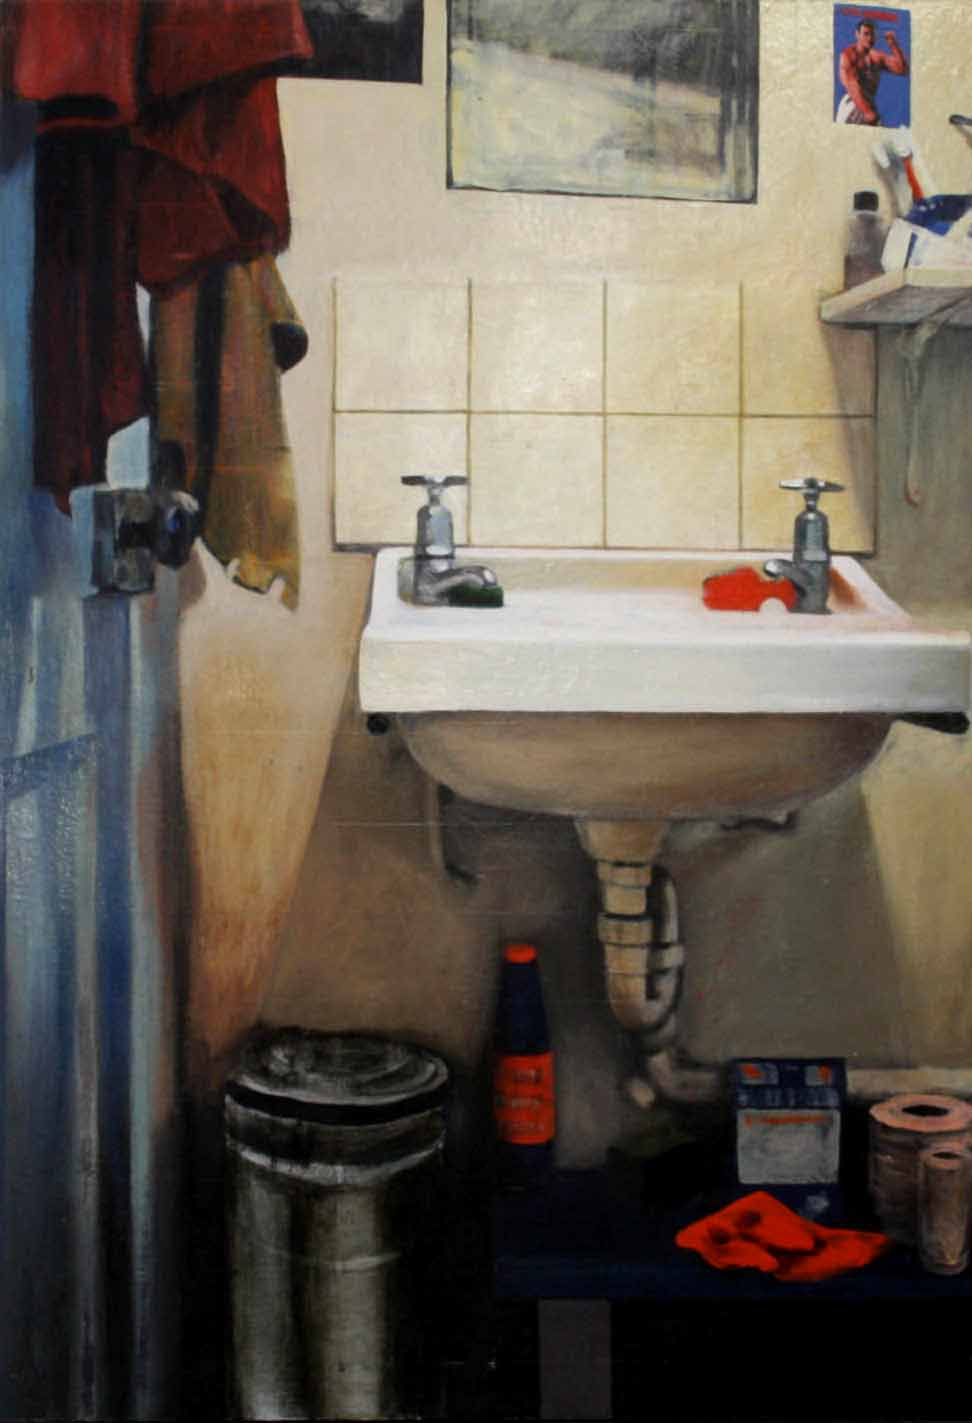 Basin With Towel no2, 1995, enamel on board, 1,2x0,85m